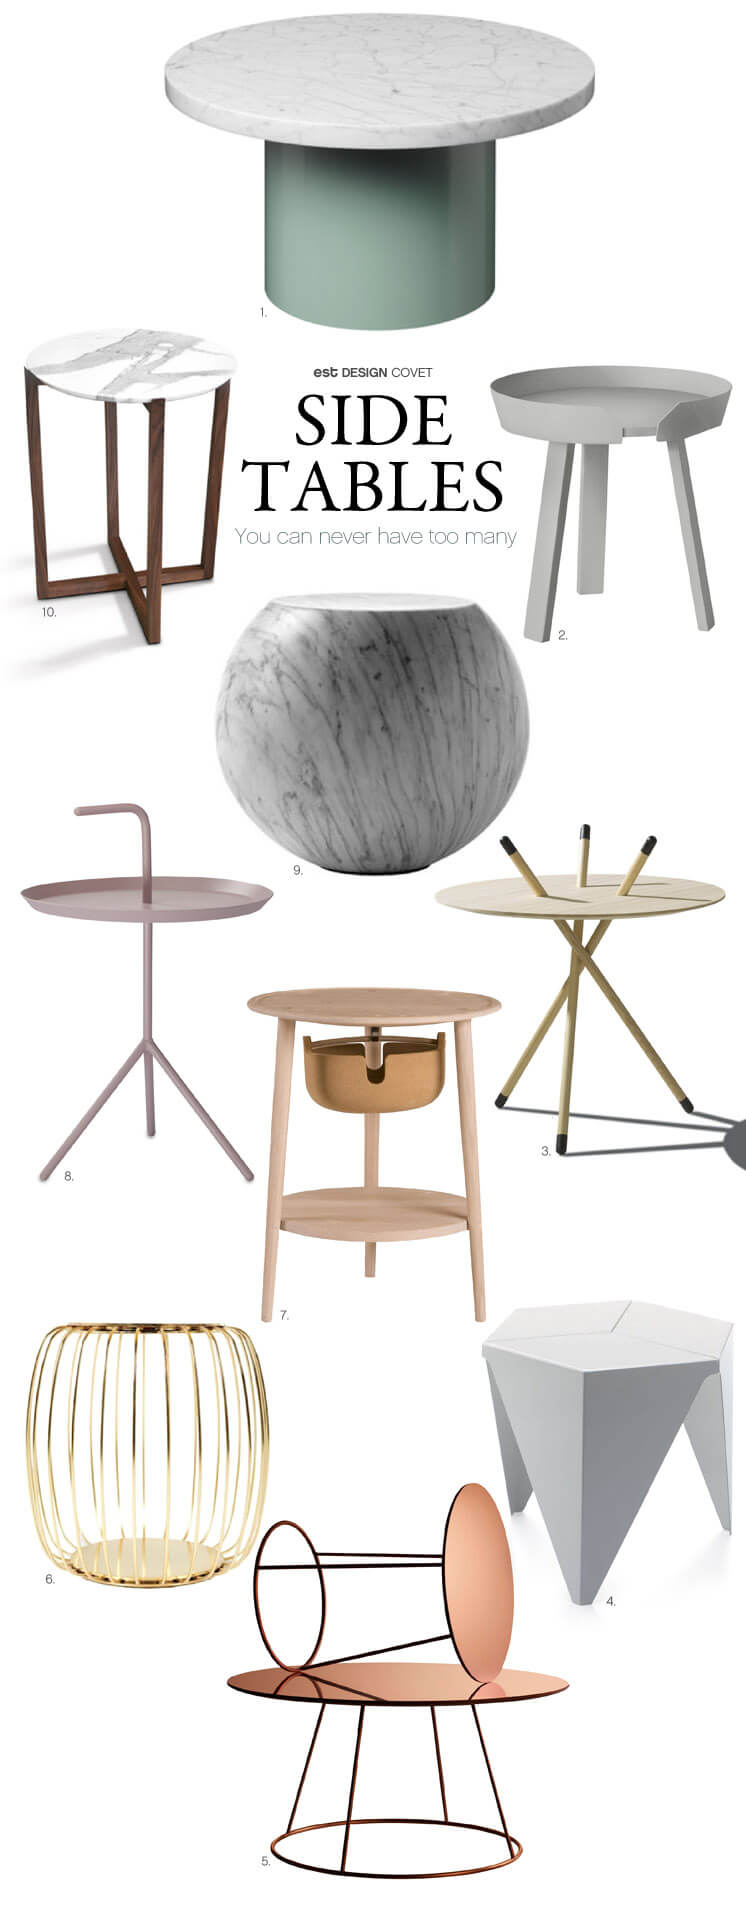 Side Tables | You can never have too many | Design Covet | Est Magazine